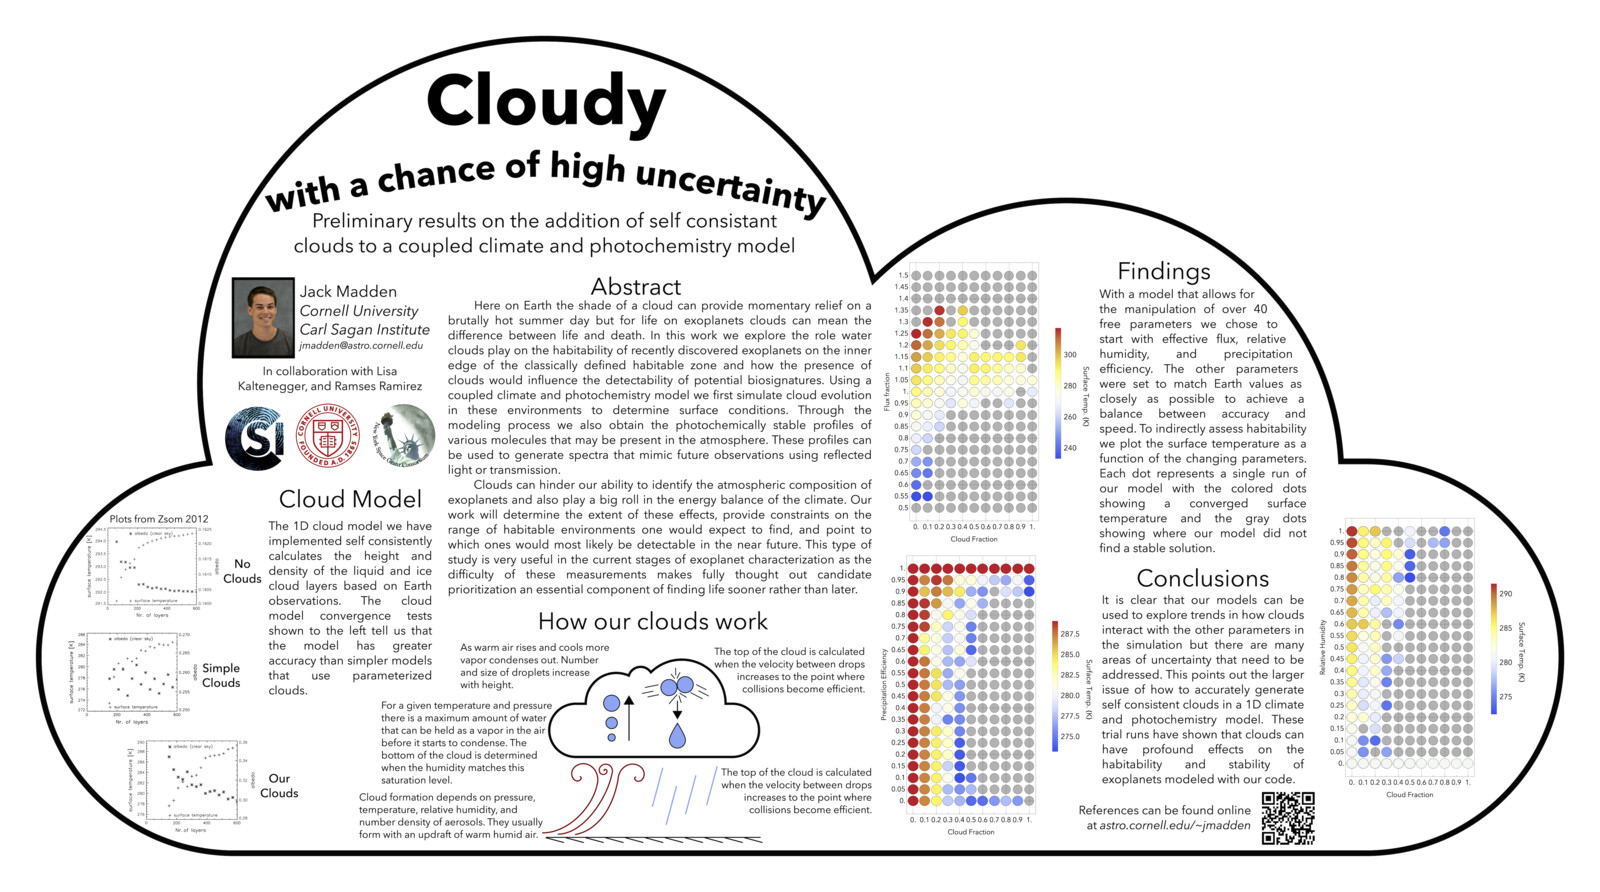 [Poster] Cloudy with a Chance of High Uncertainty